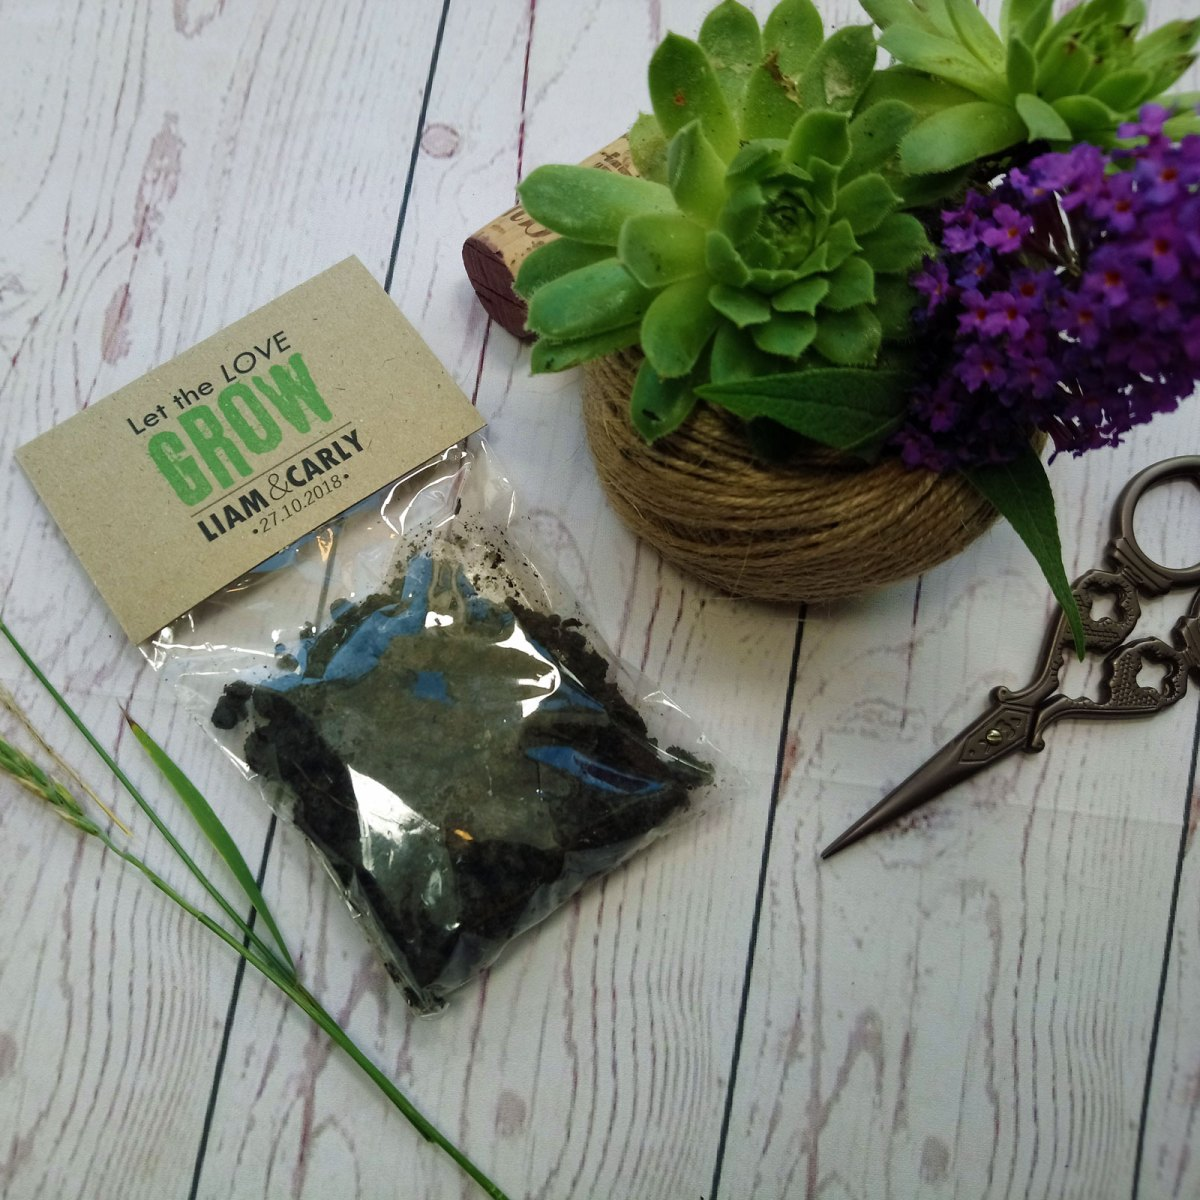 Let The Love Grow Seeds Bag Favour with soil and flower seeds